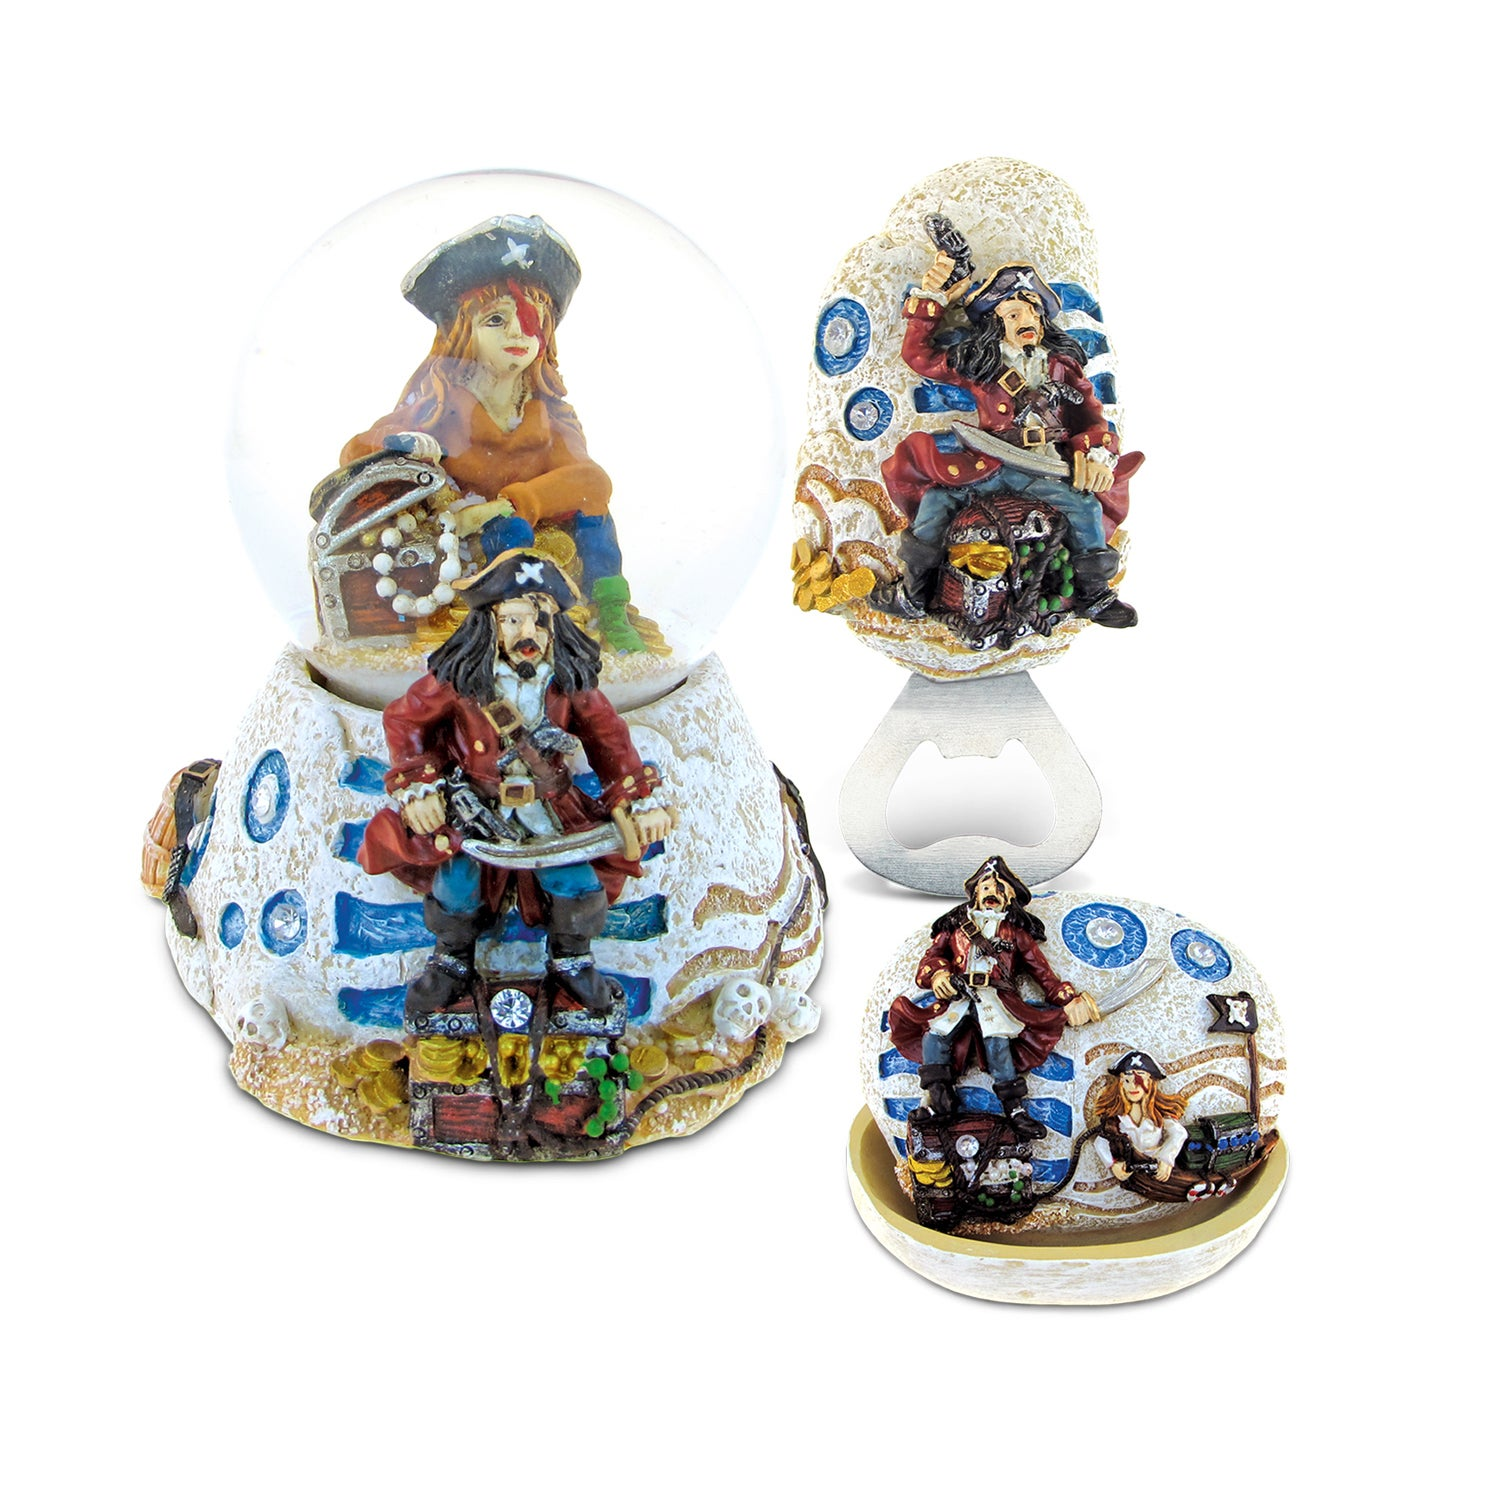 Puzzled Home Decor Value Pack Mermaid Pirate Stone collec...